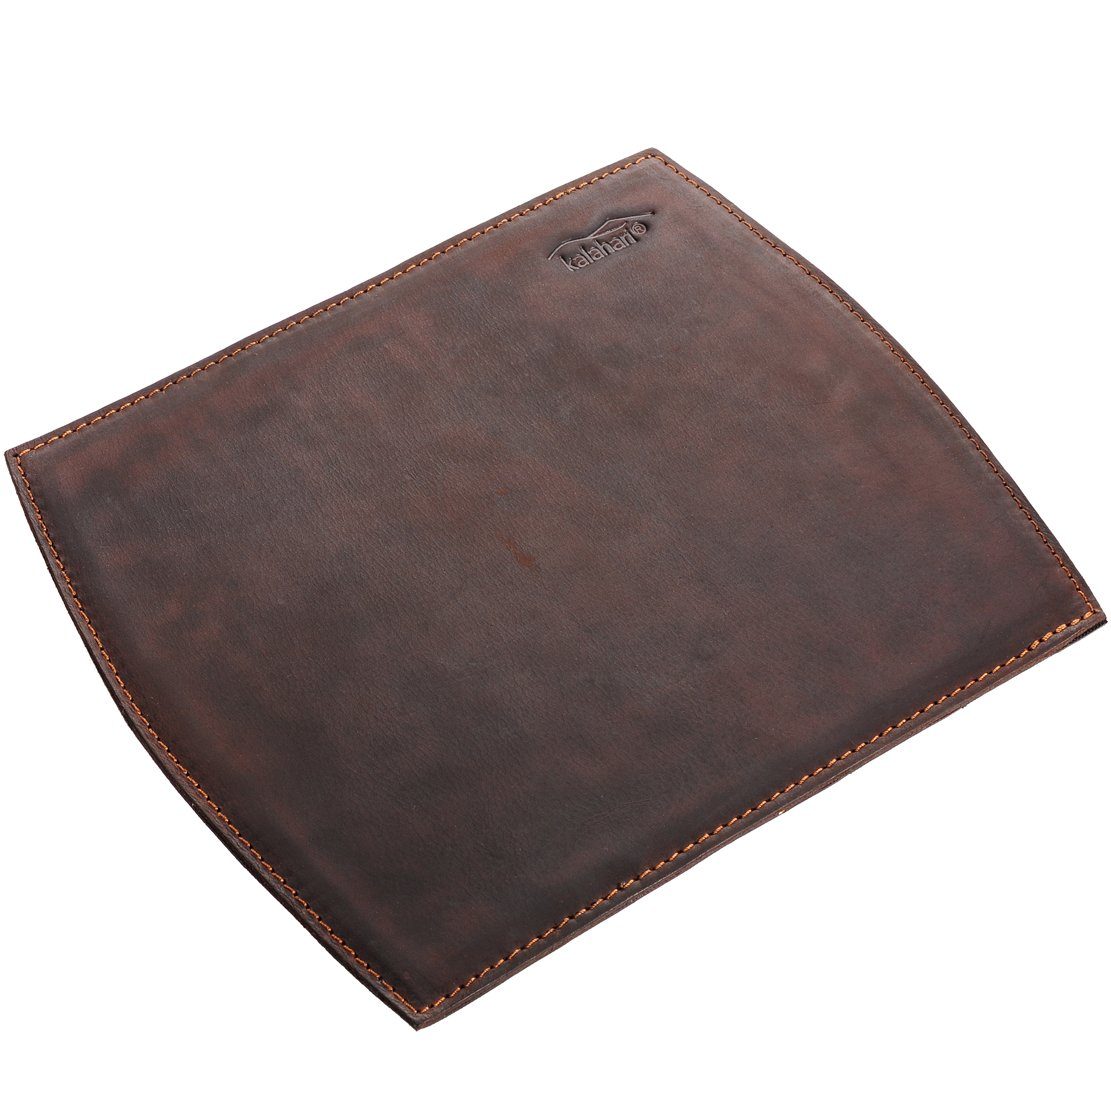 Kalahari Kaama Mousepad Leather by Kalahari